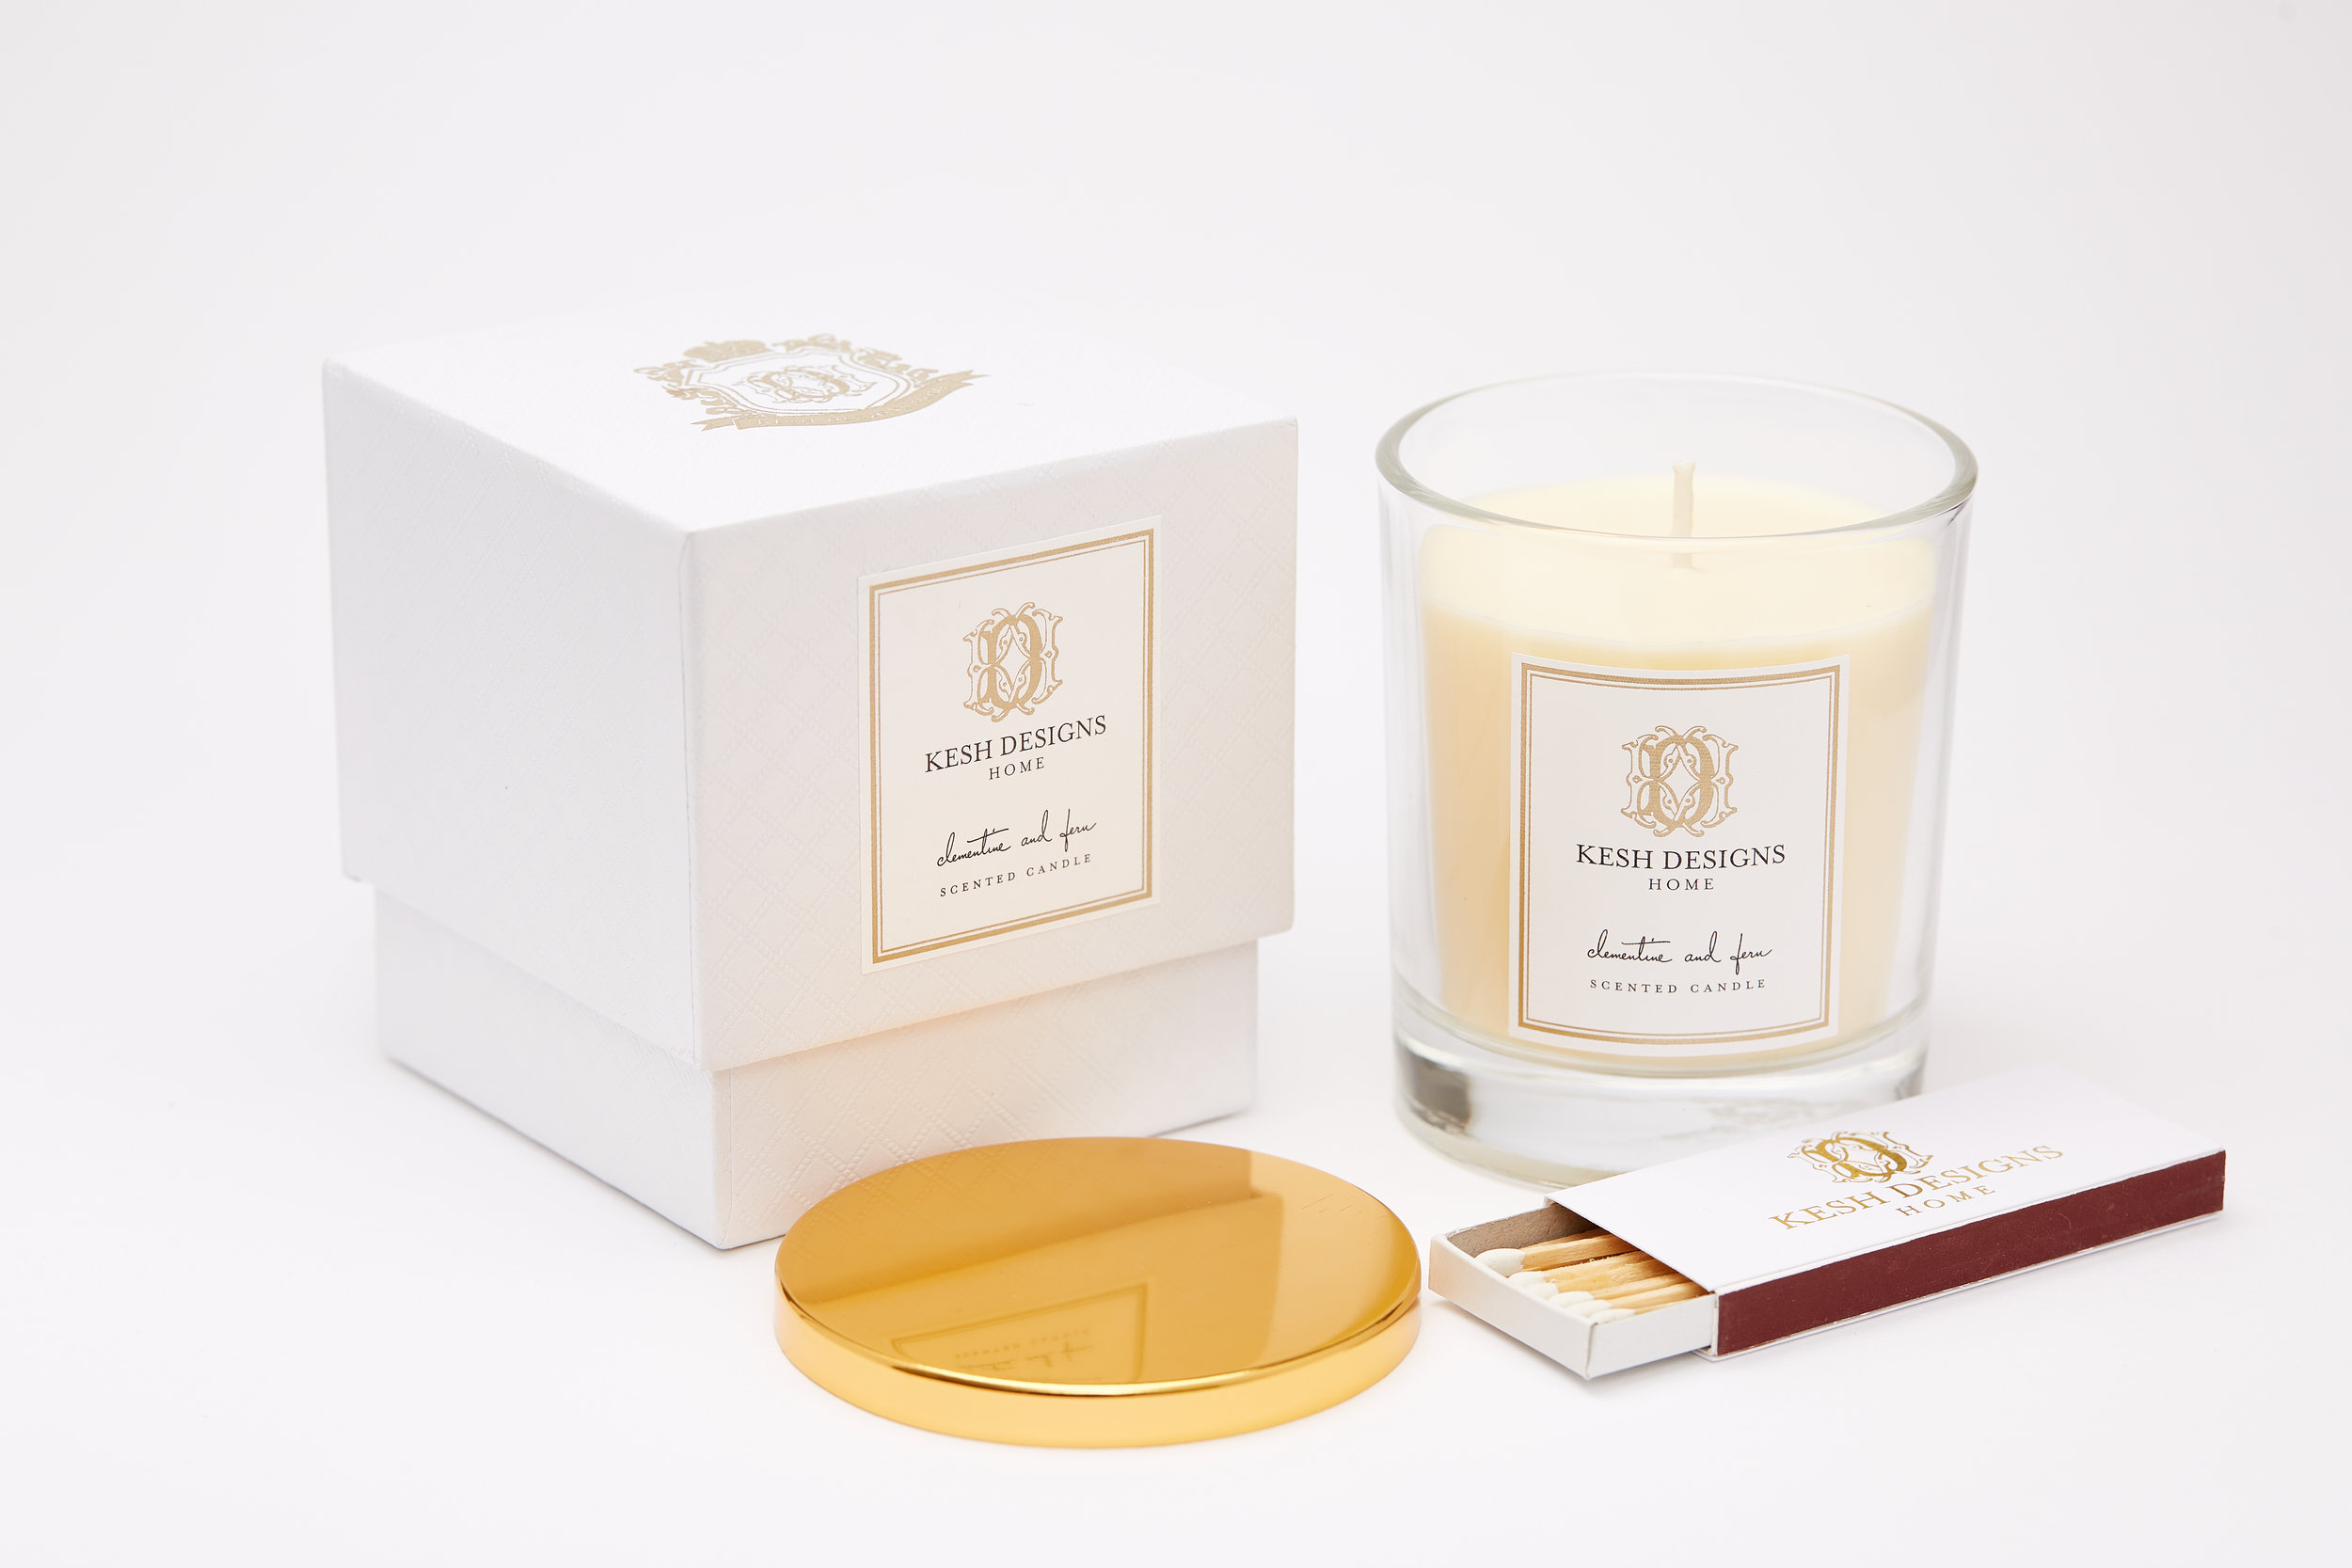 Clementine-fern-scented-candle.JPG